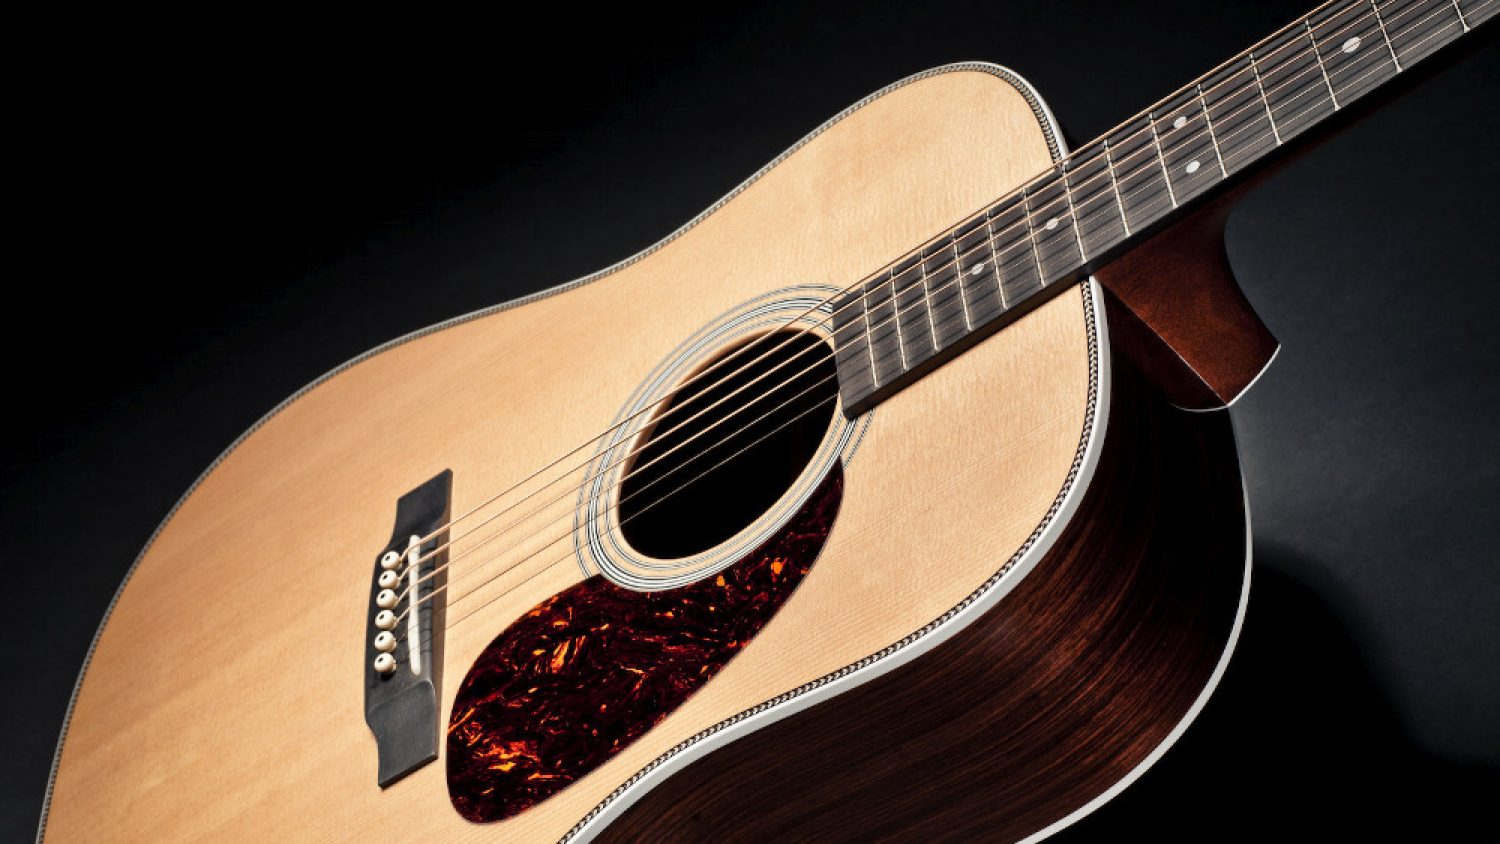 Acoustic guitar string buying guide: everything you need to know